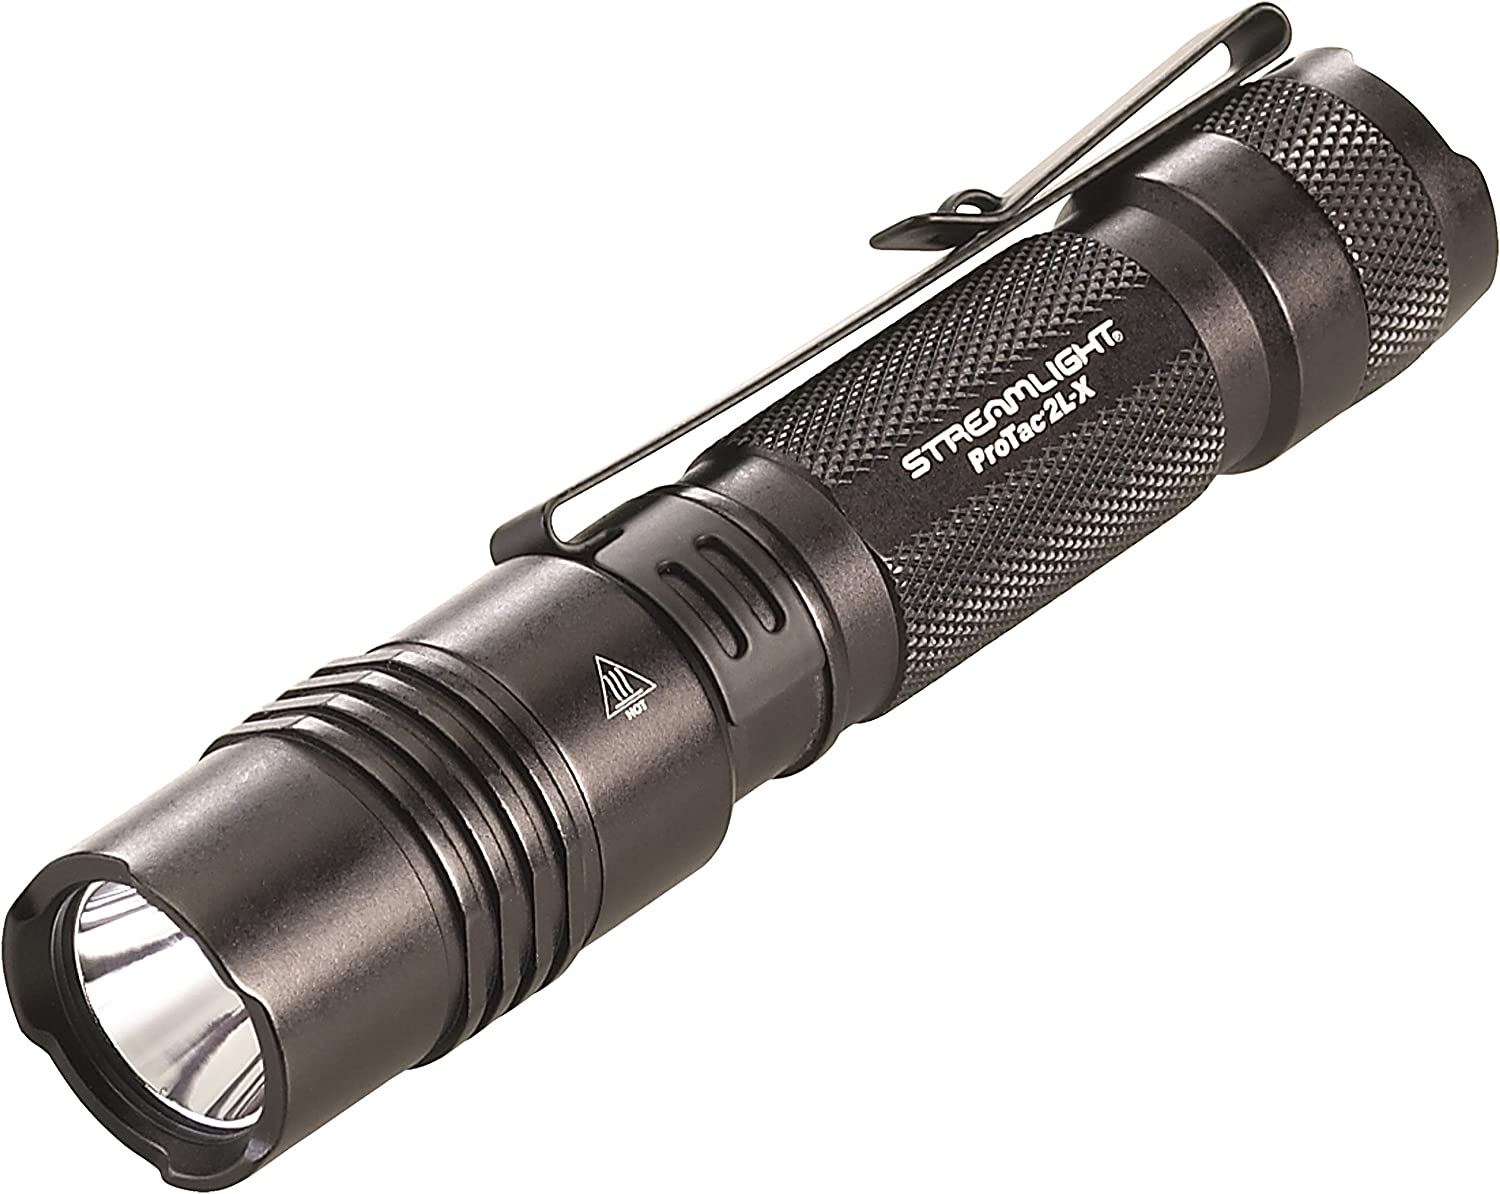 Streamlight 88083 ProTac 2L-X USB, Rechargeable Battery